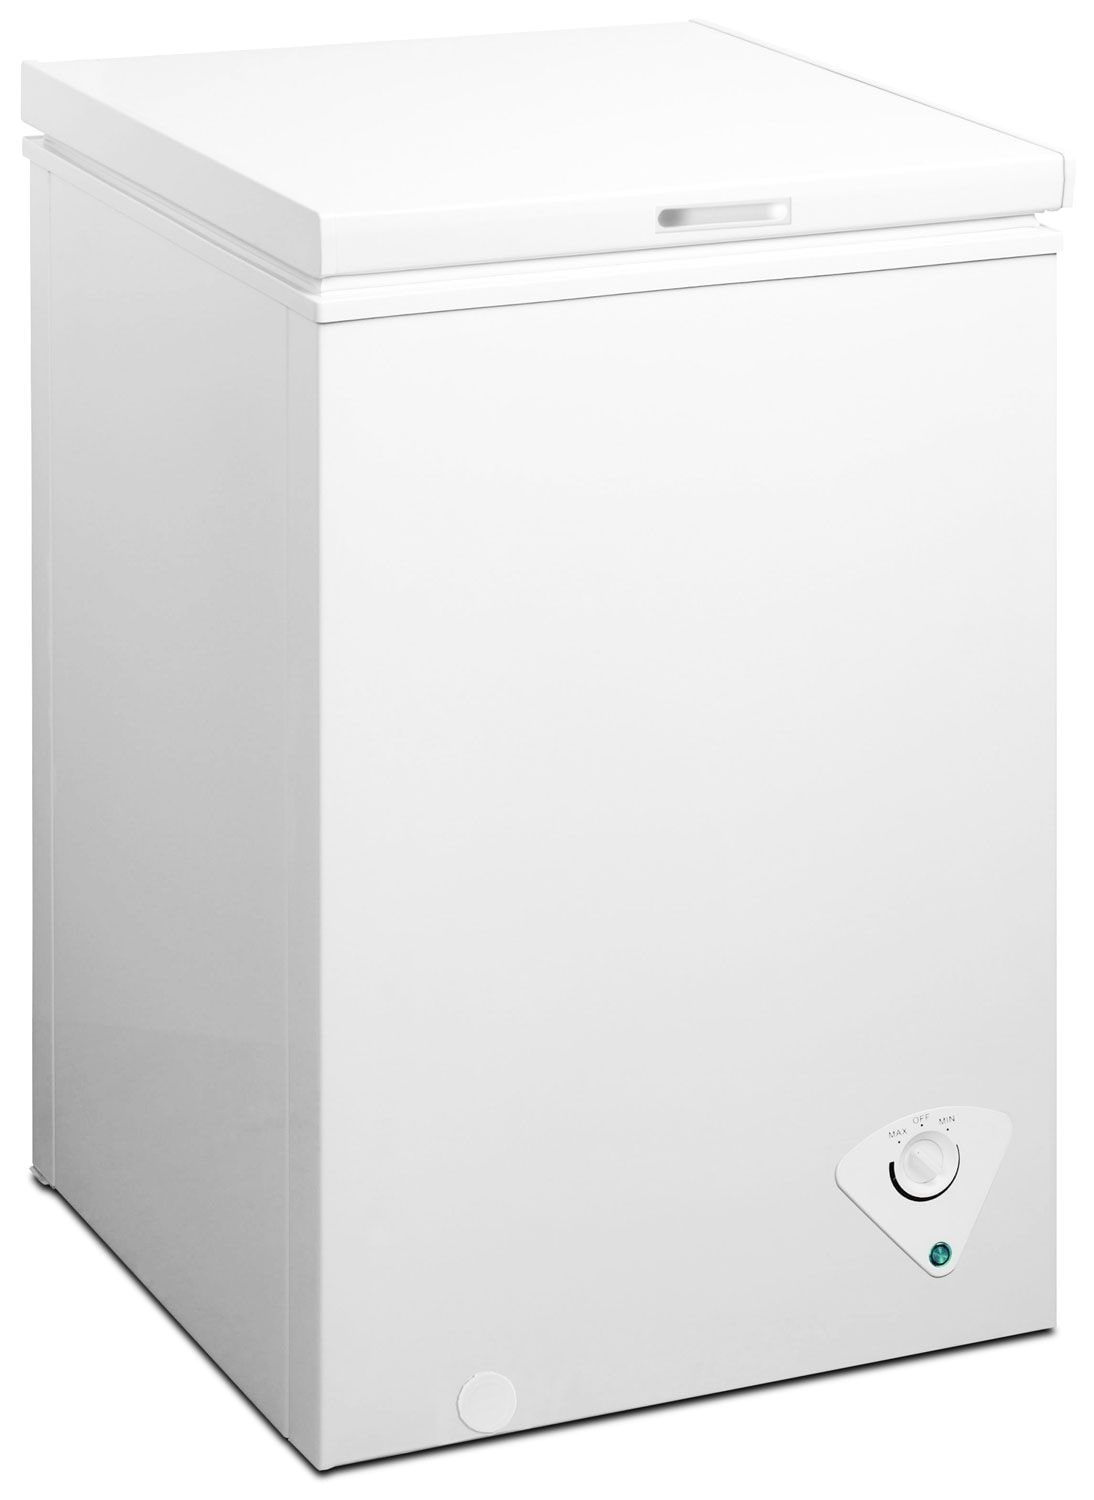 Midea 3.5 Cu. Ft. Chest Freezer - White